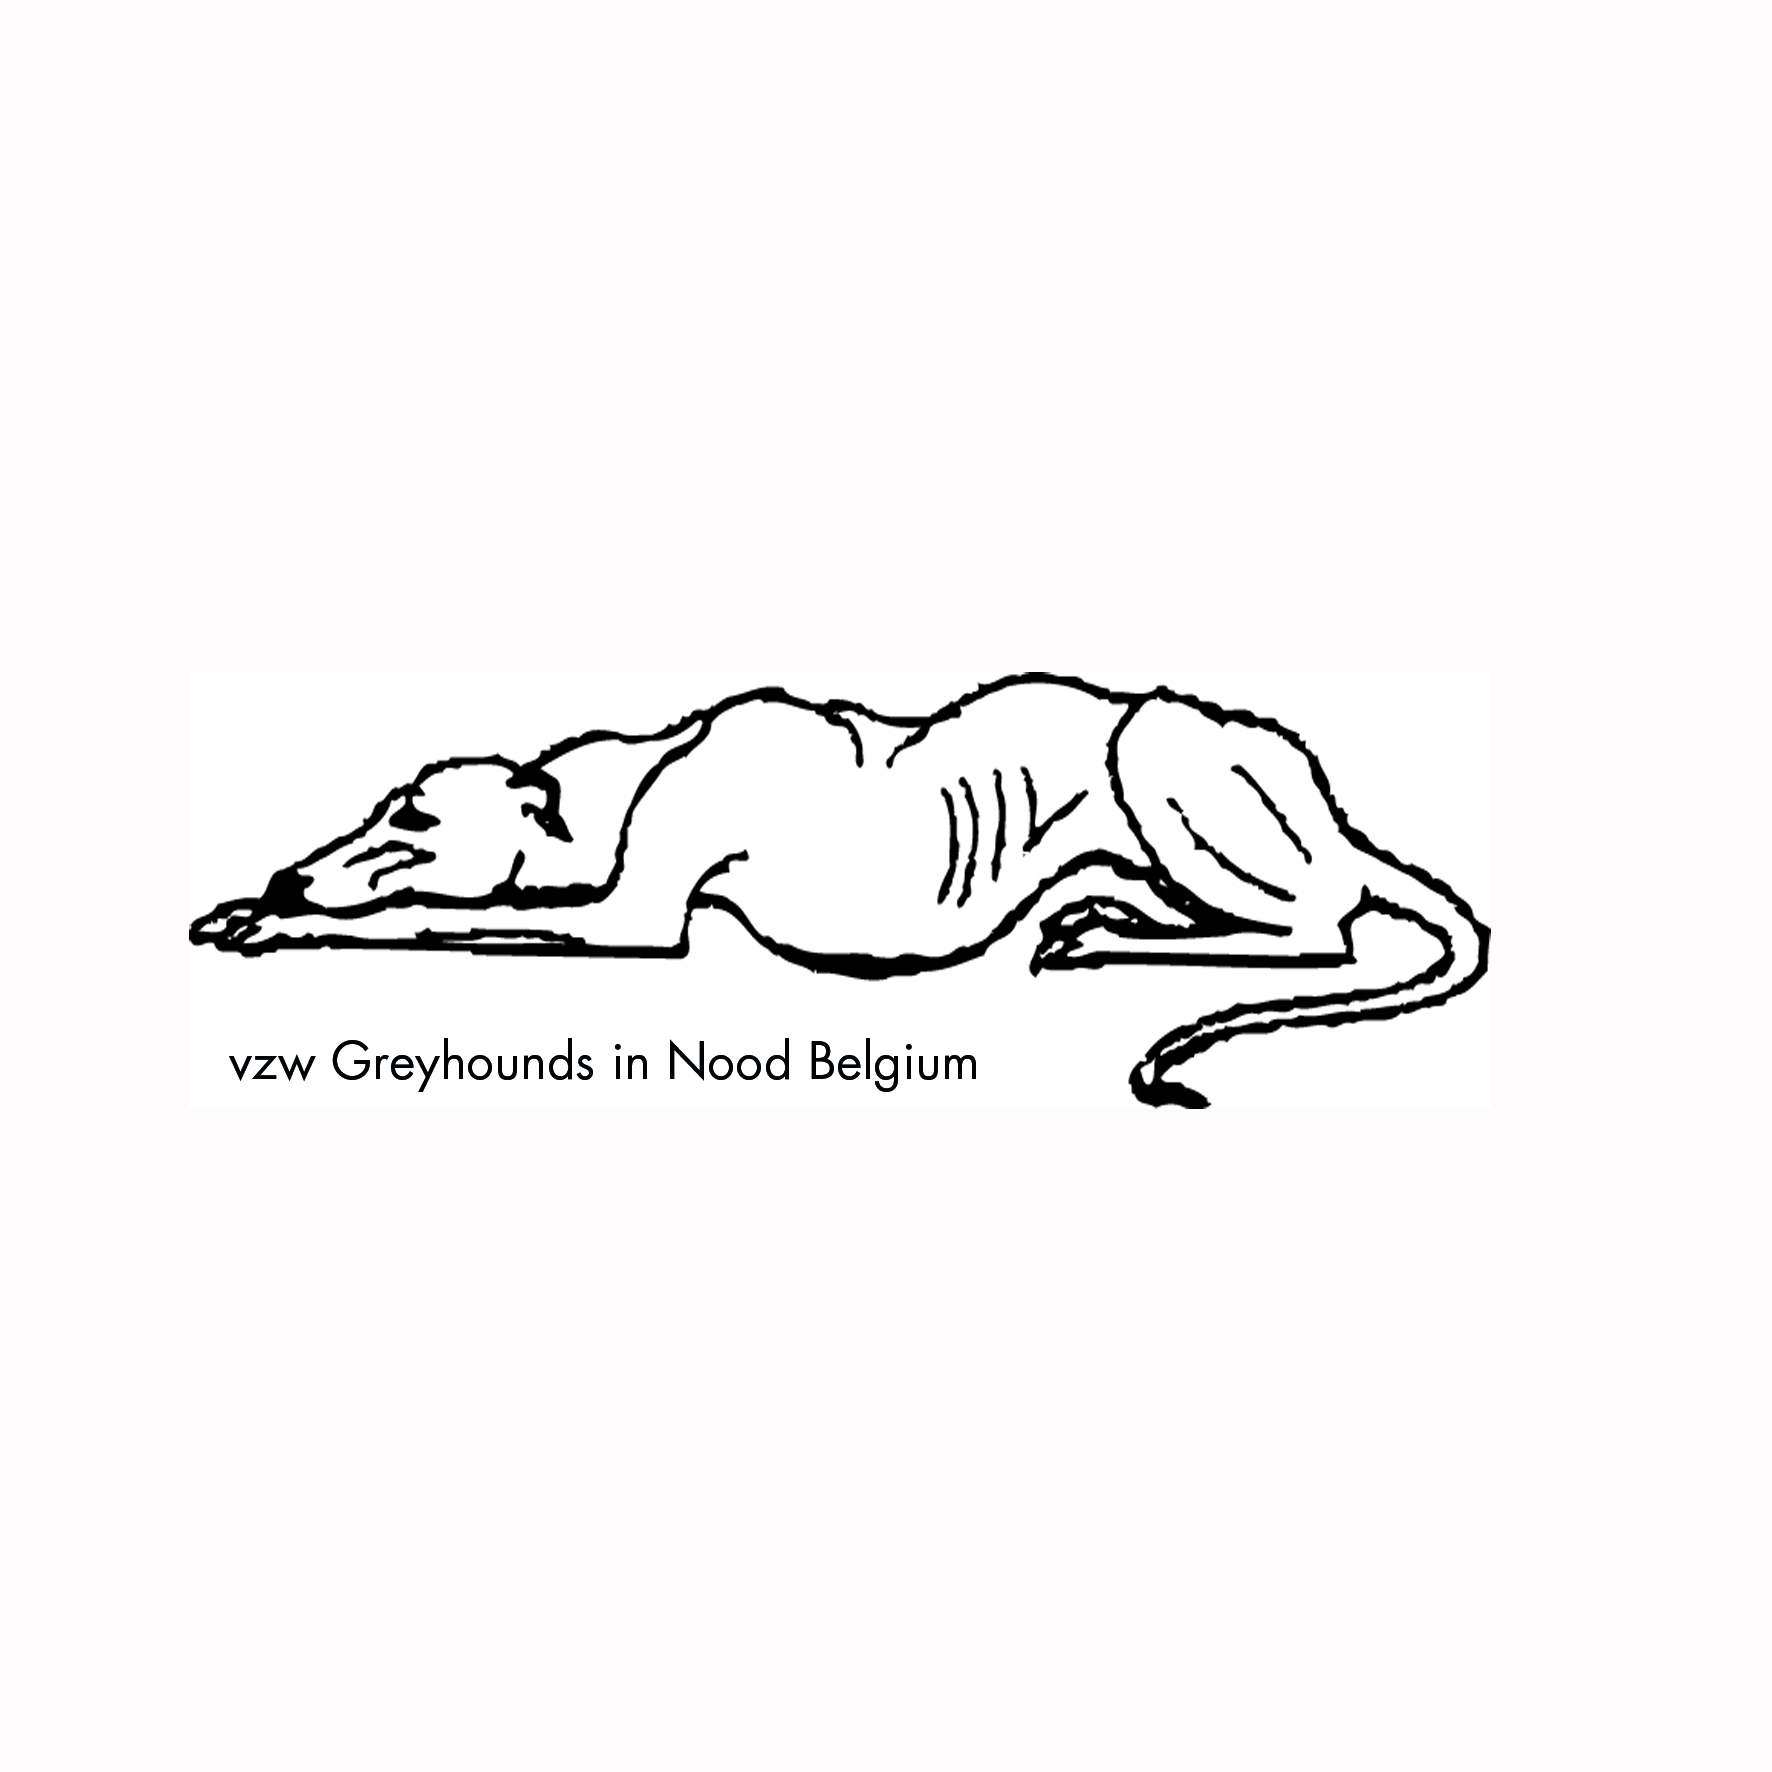 Greyhounds in Nood Belgium vzw